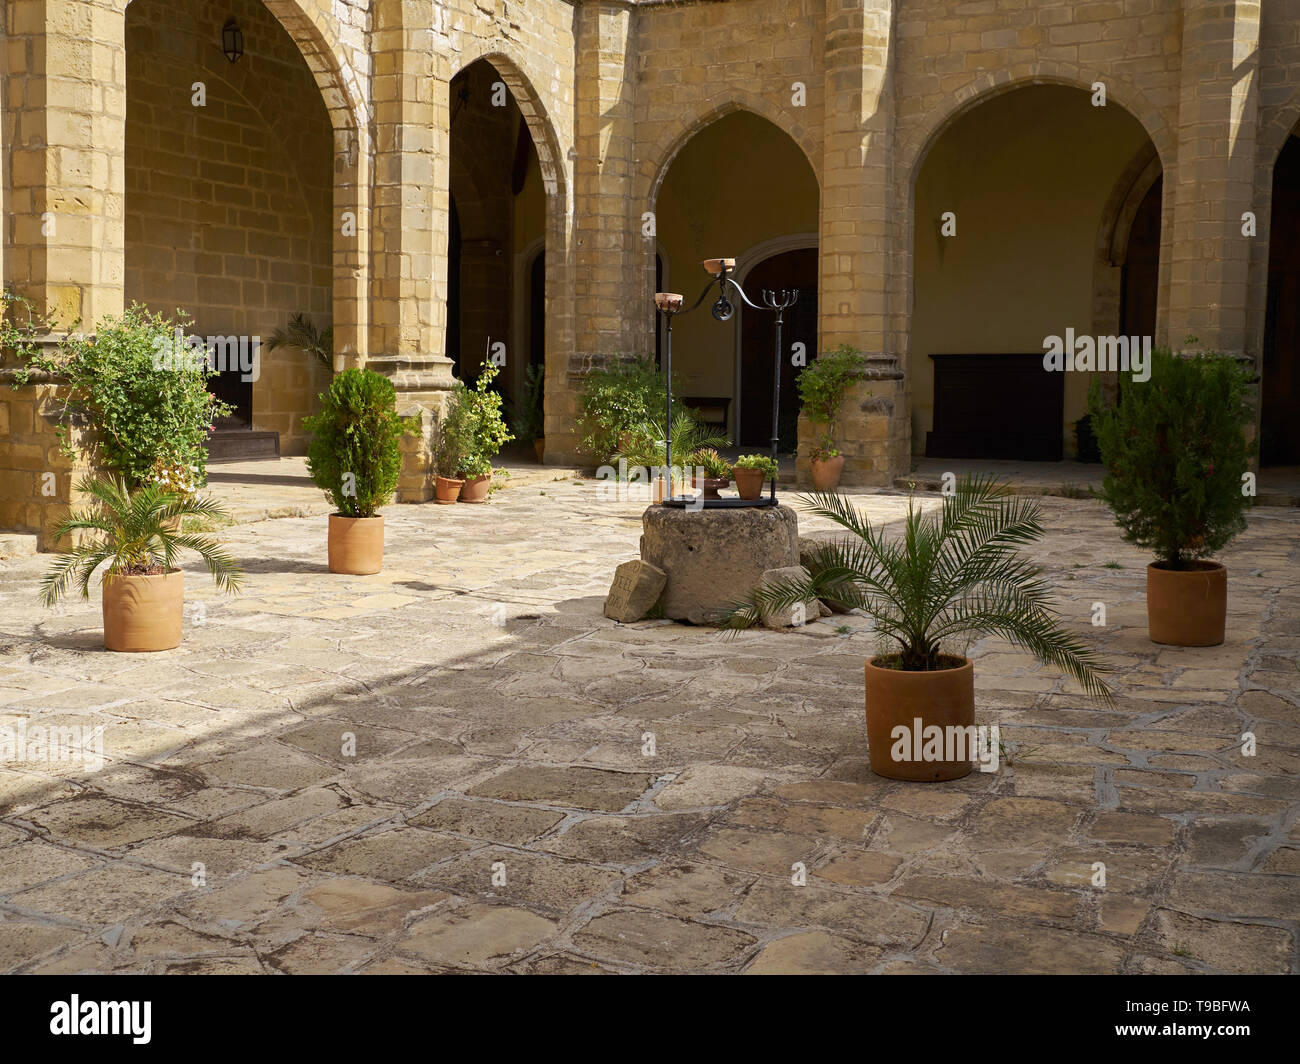 Patio of the Cathedral of Baeza, Jaén, Andalusia, Spain. Stock Photo